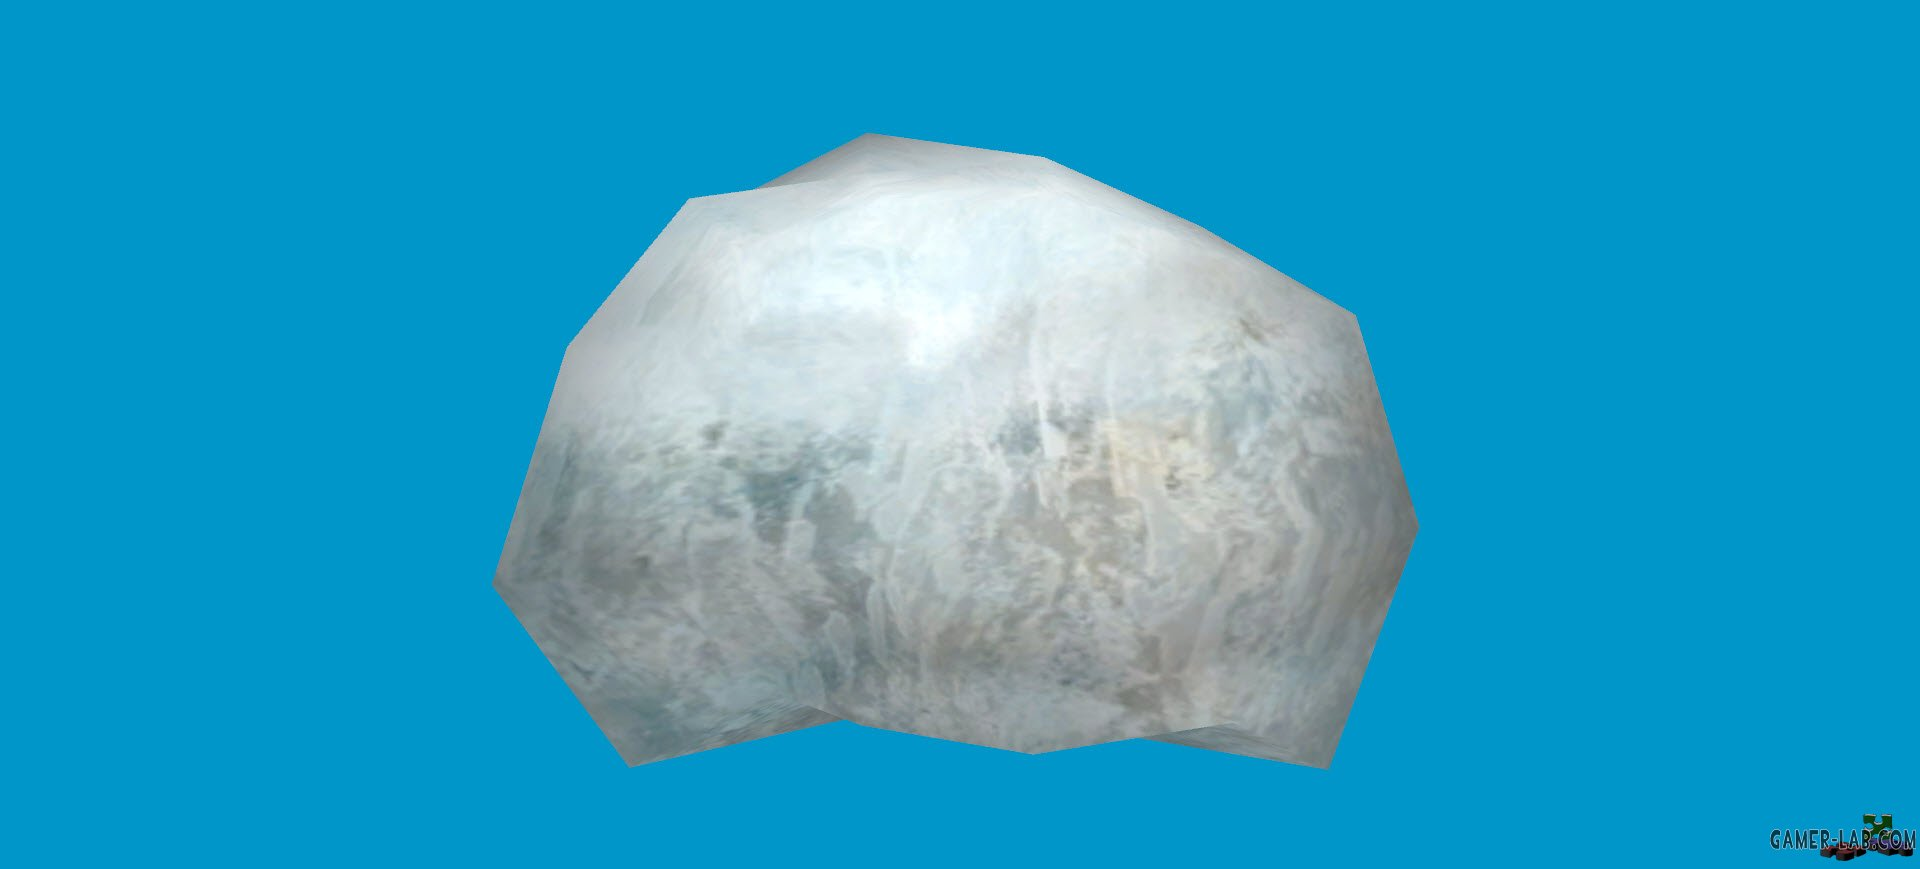 prop_boulder_little_2